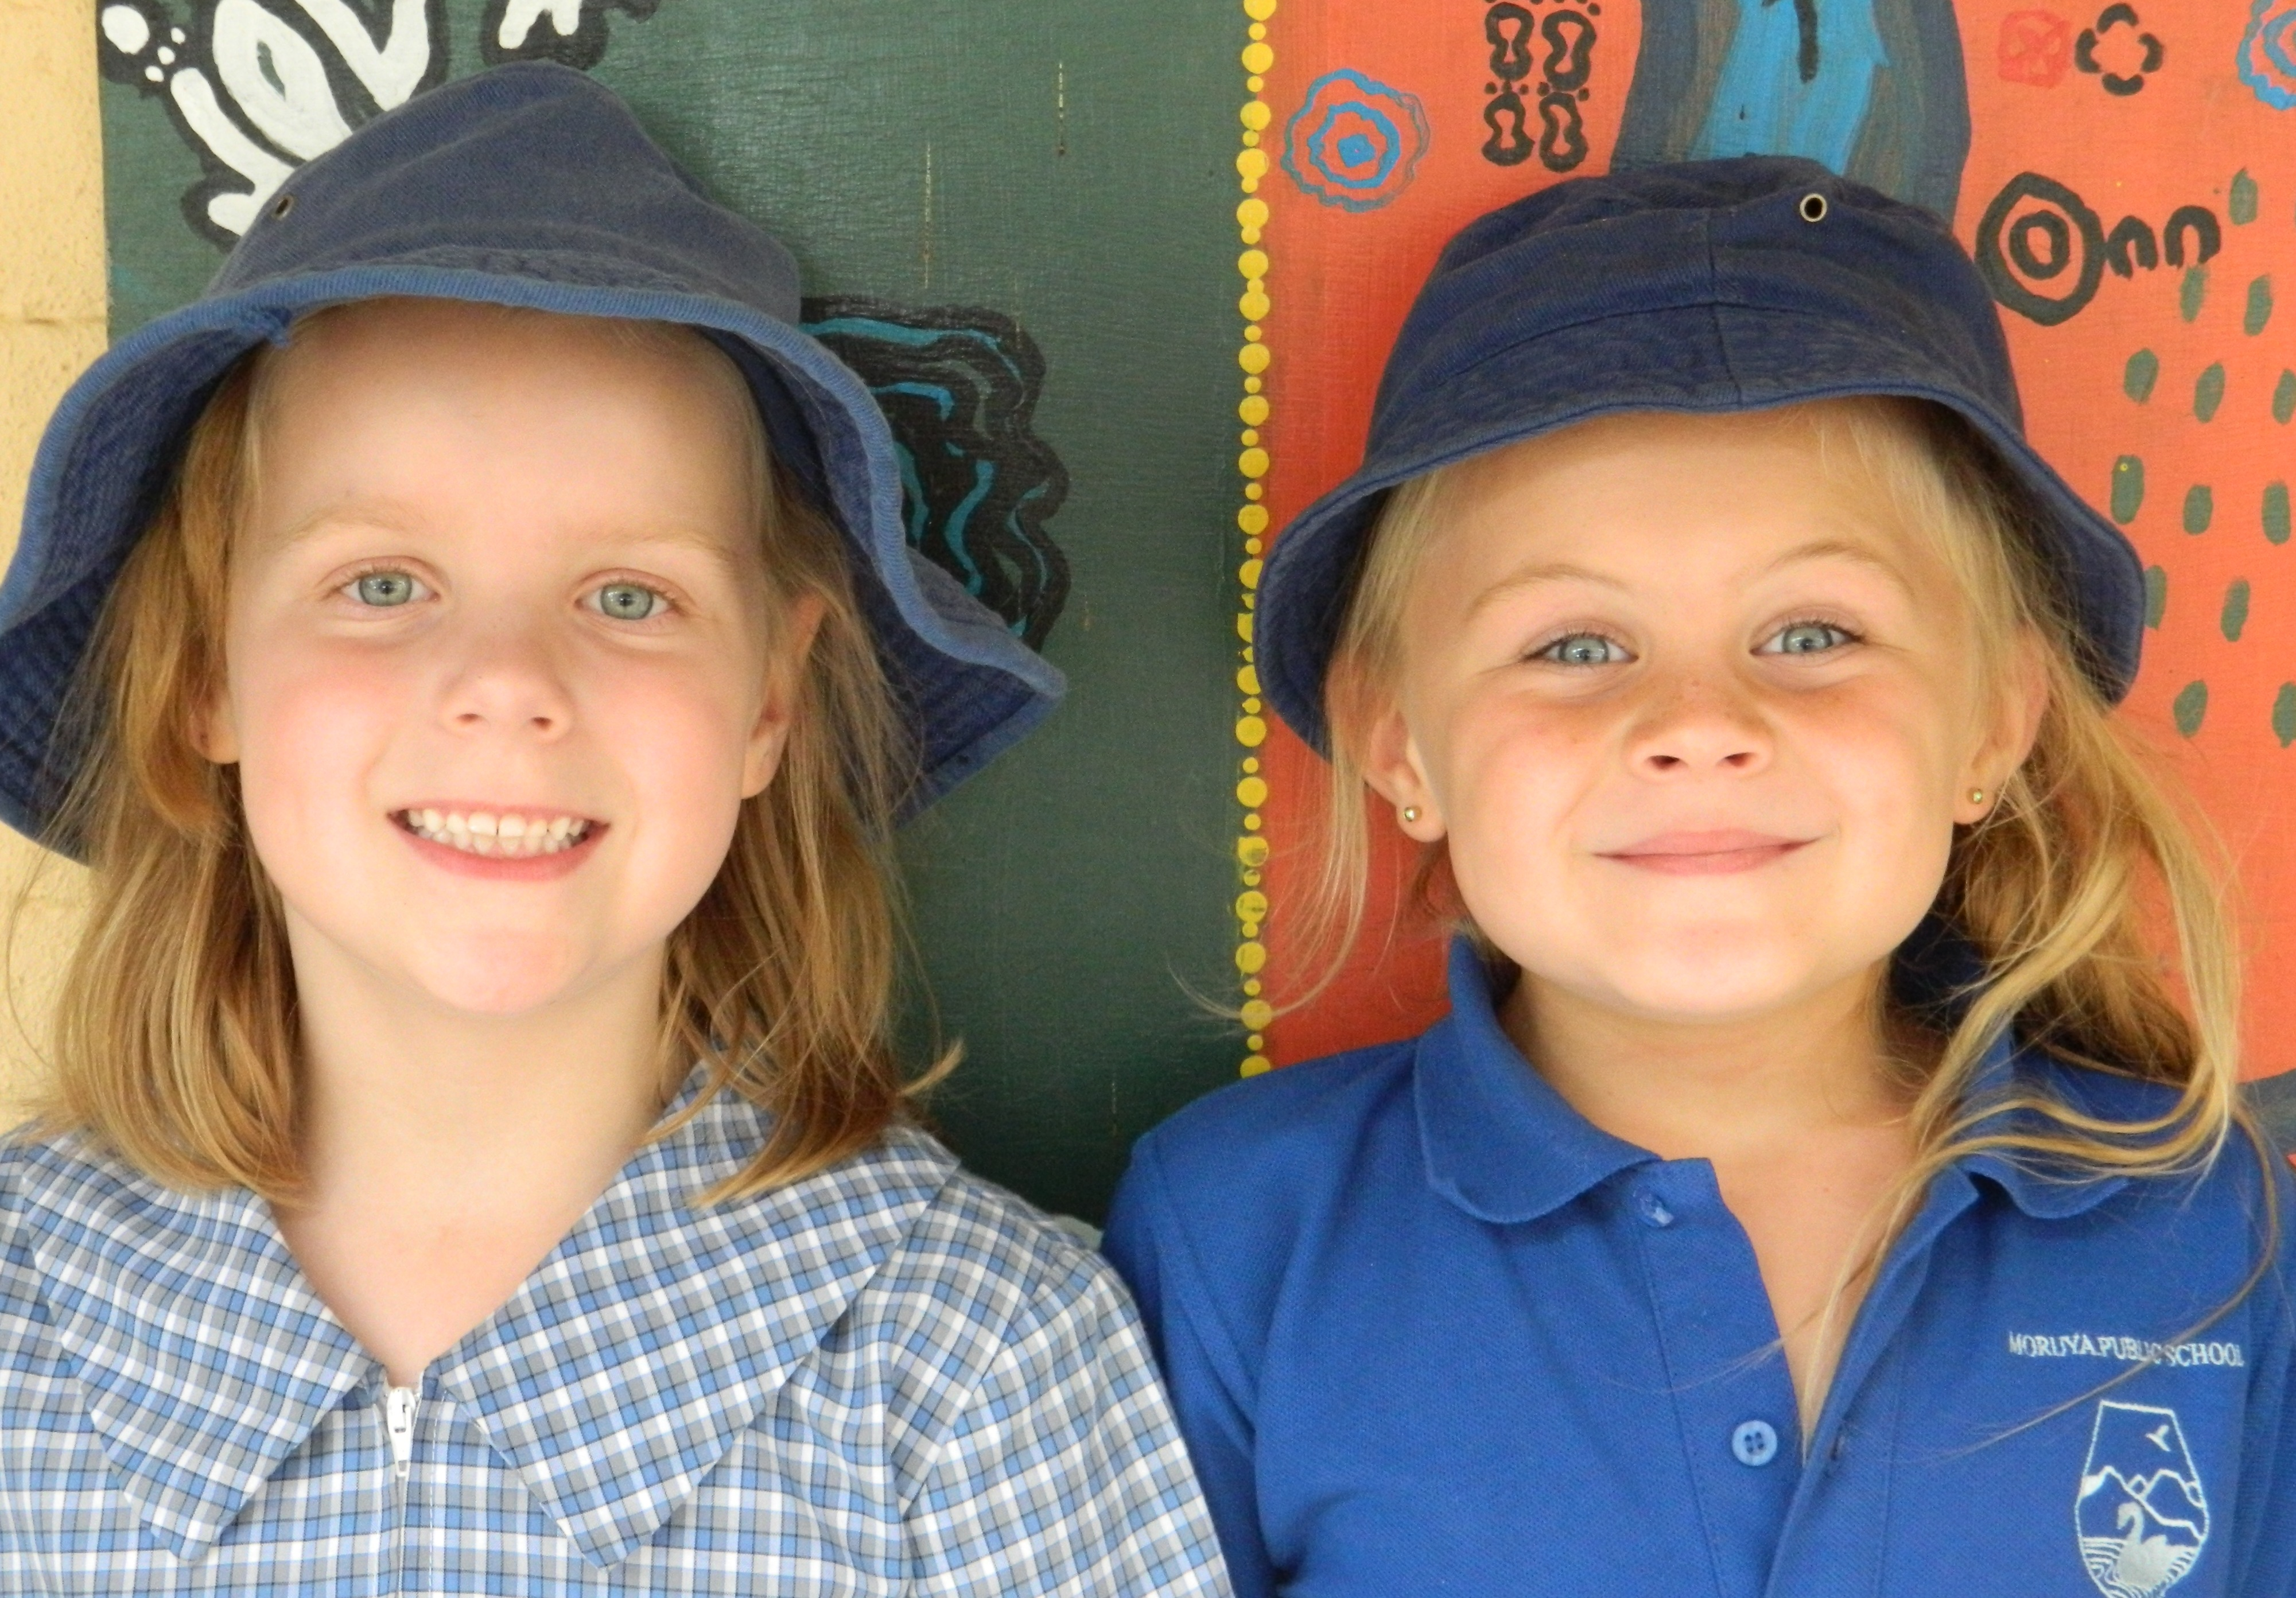 Hats are an important part of the school uniform